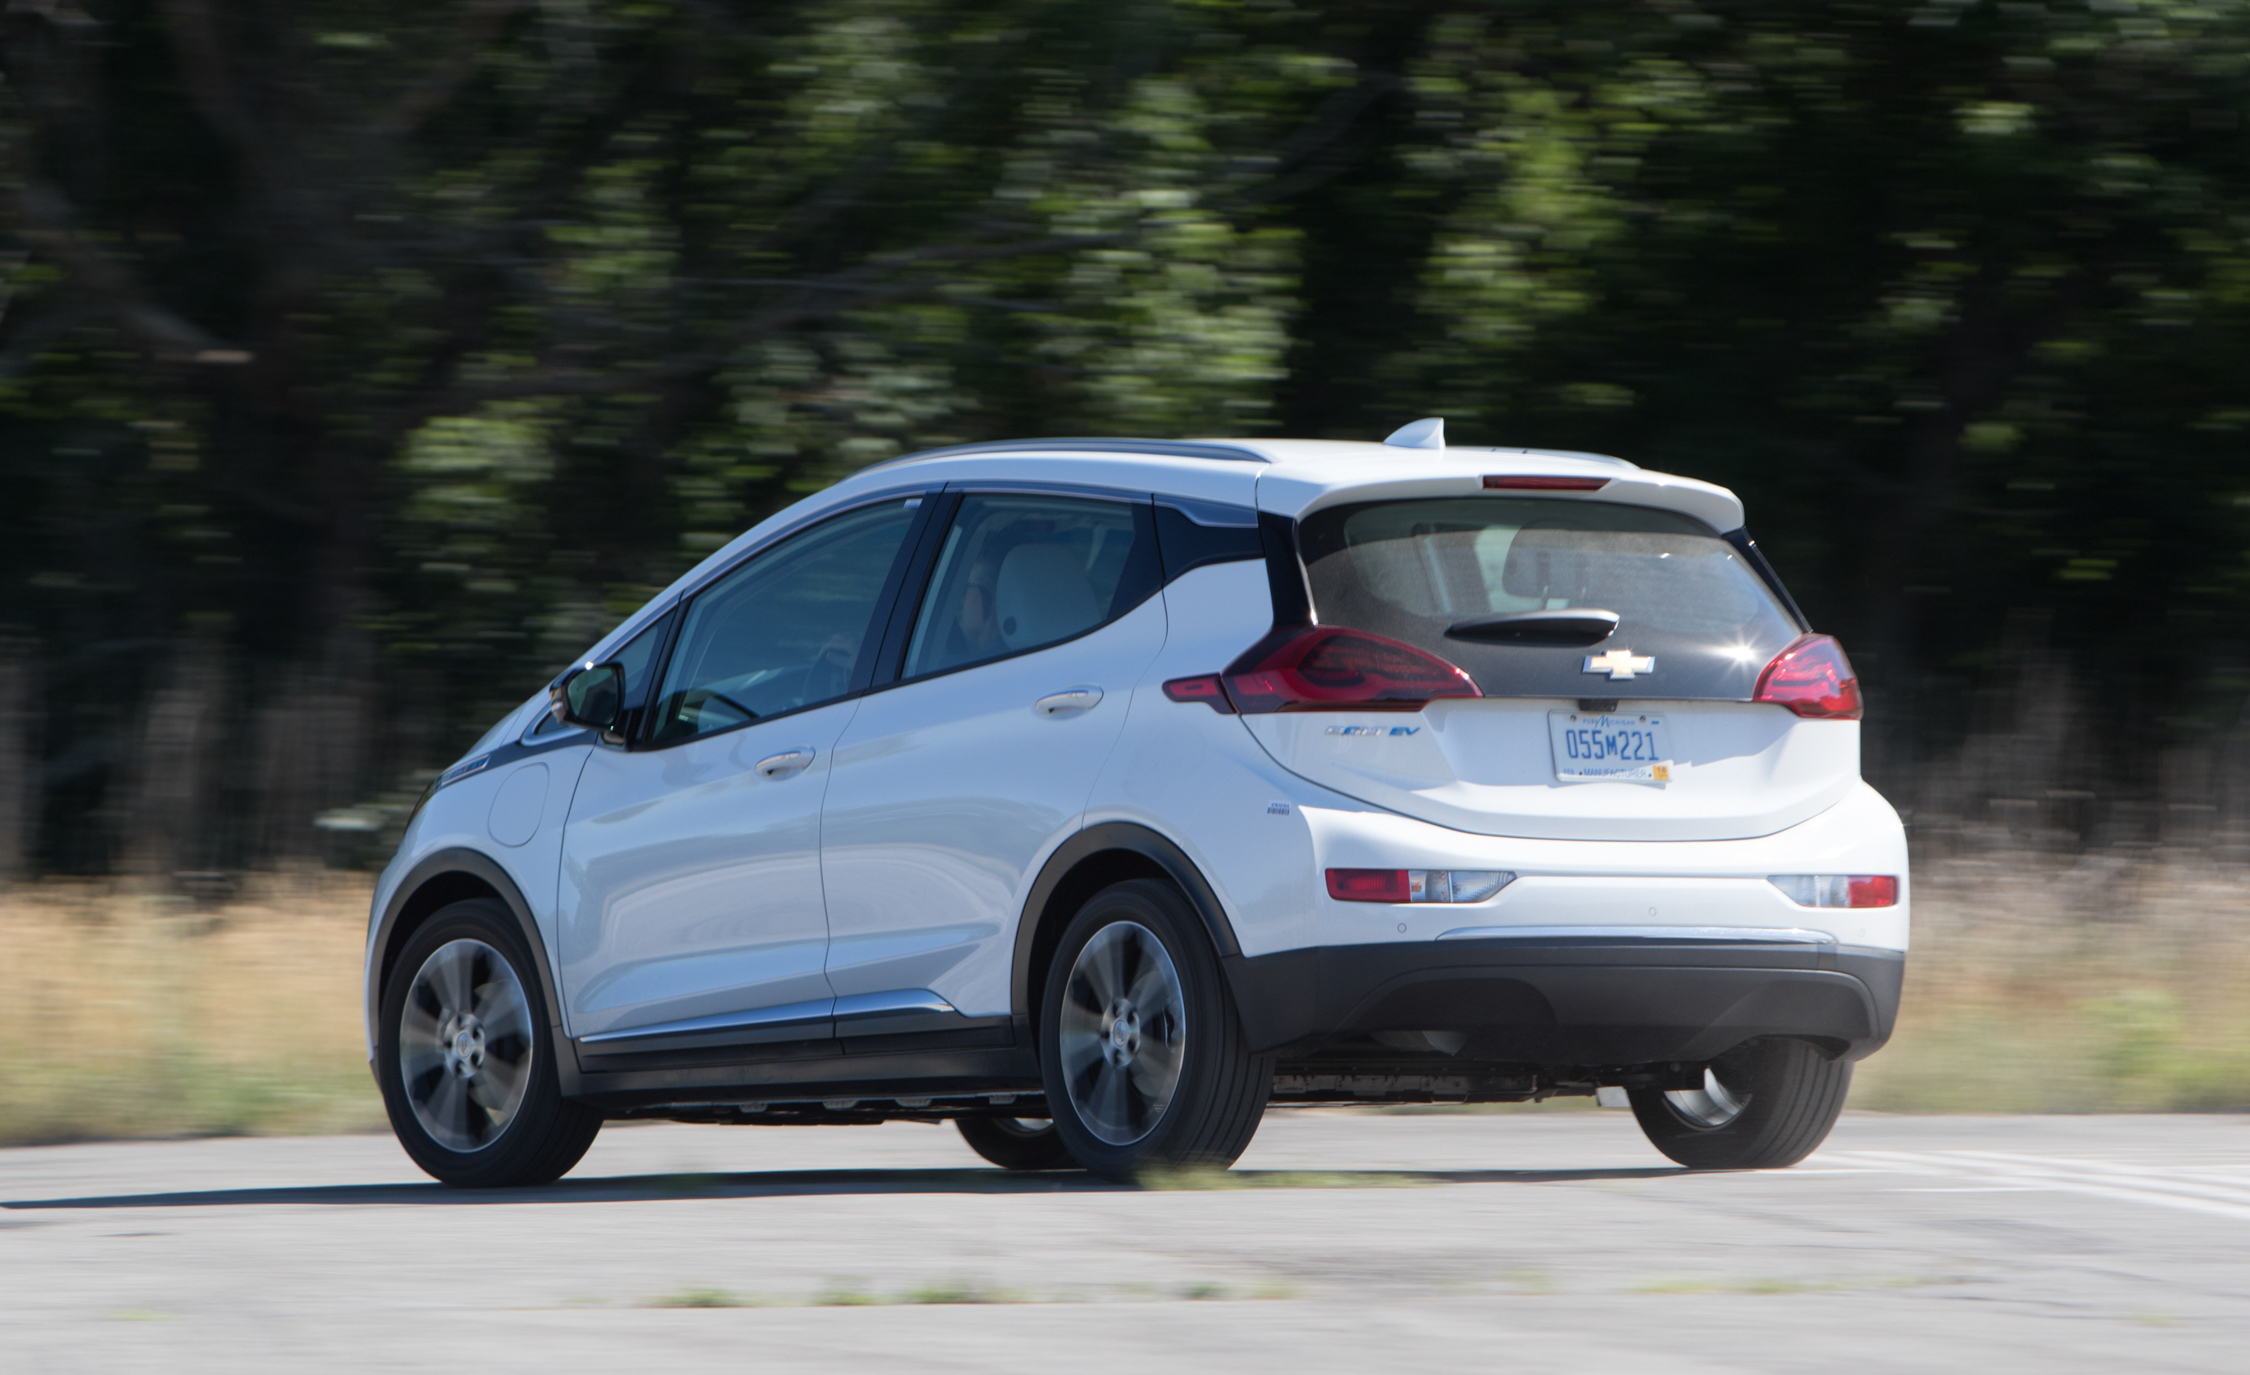 2017 Chevrolet Bolt Ev Cars Exclusive Videos And Photos Updates